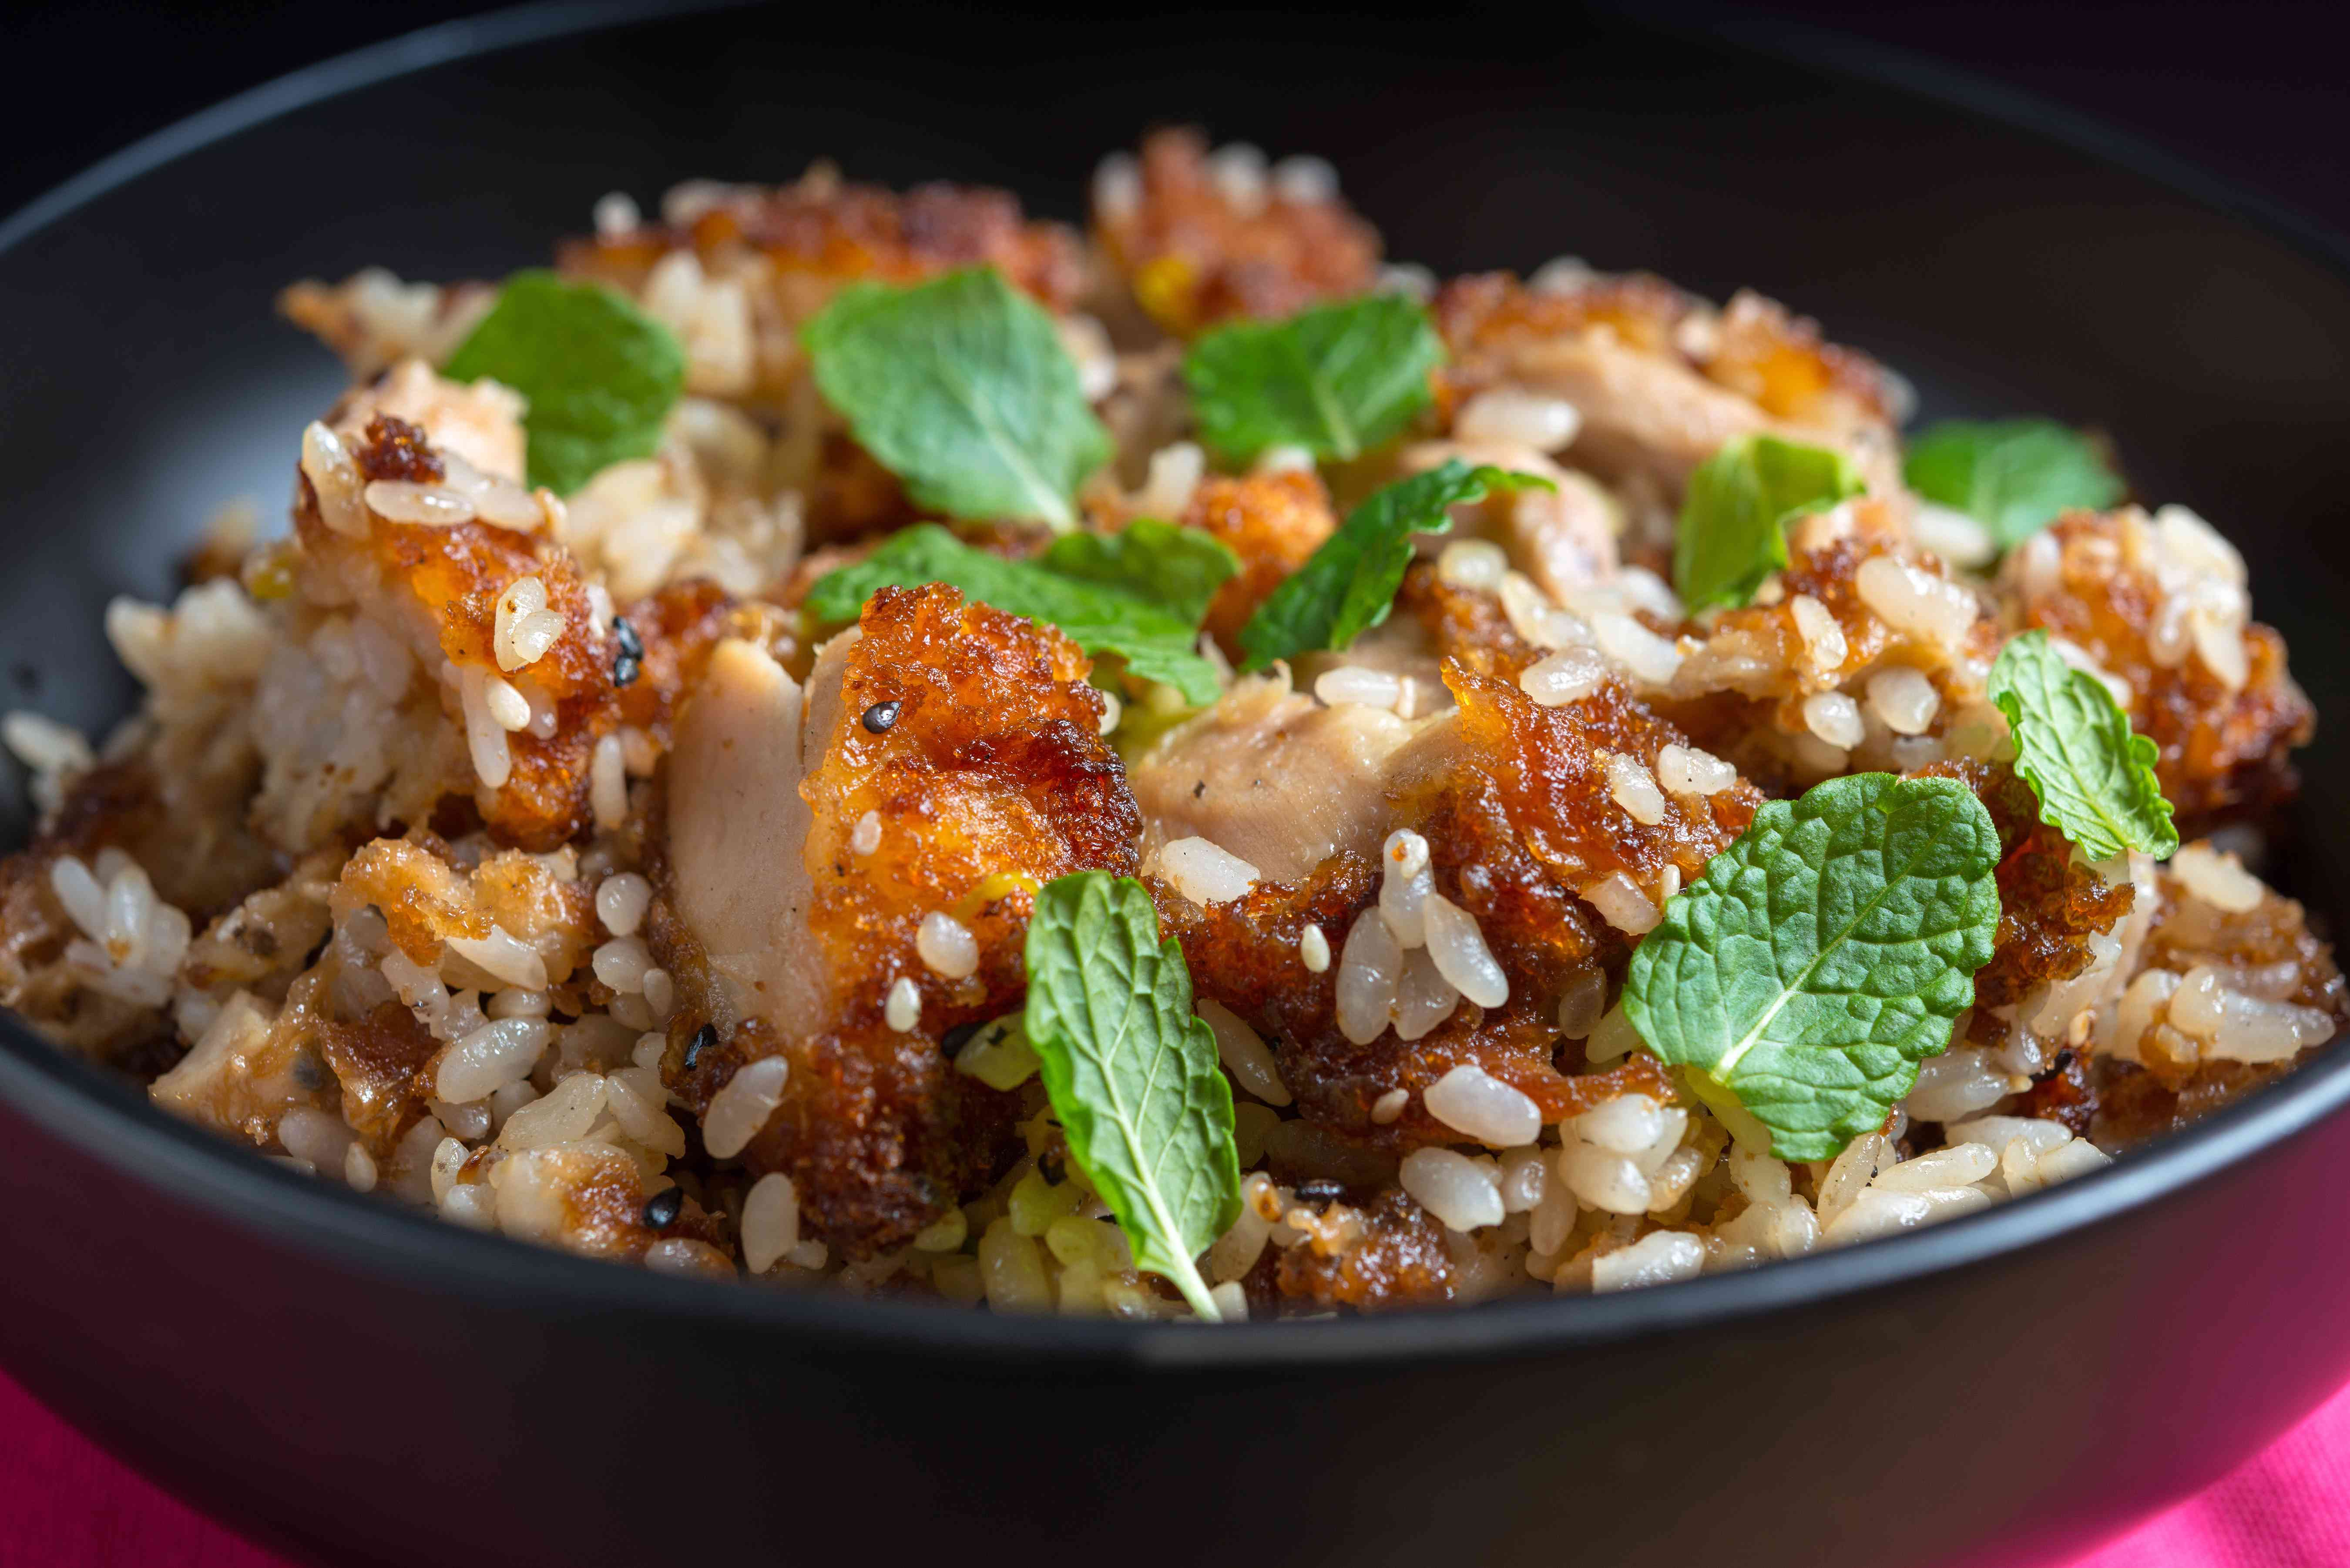 Close-Up Of Fried Rice With Chicken Meat And Mint Leaves In Bowl